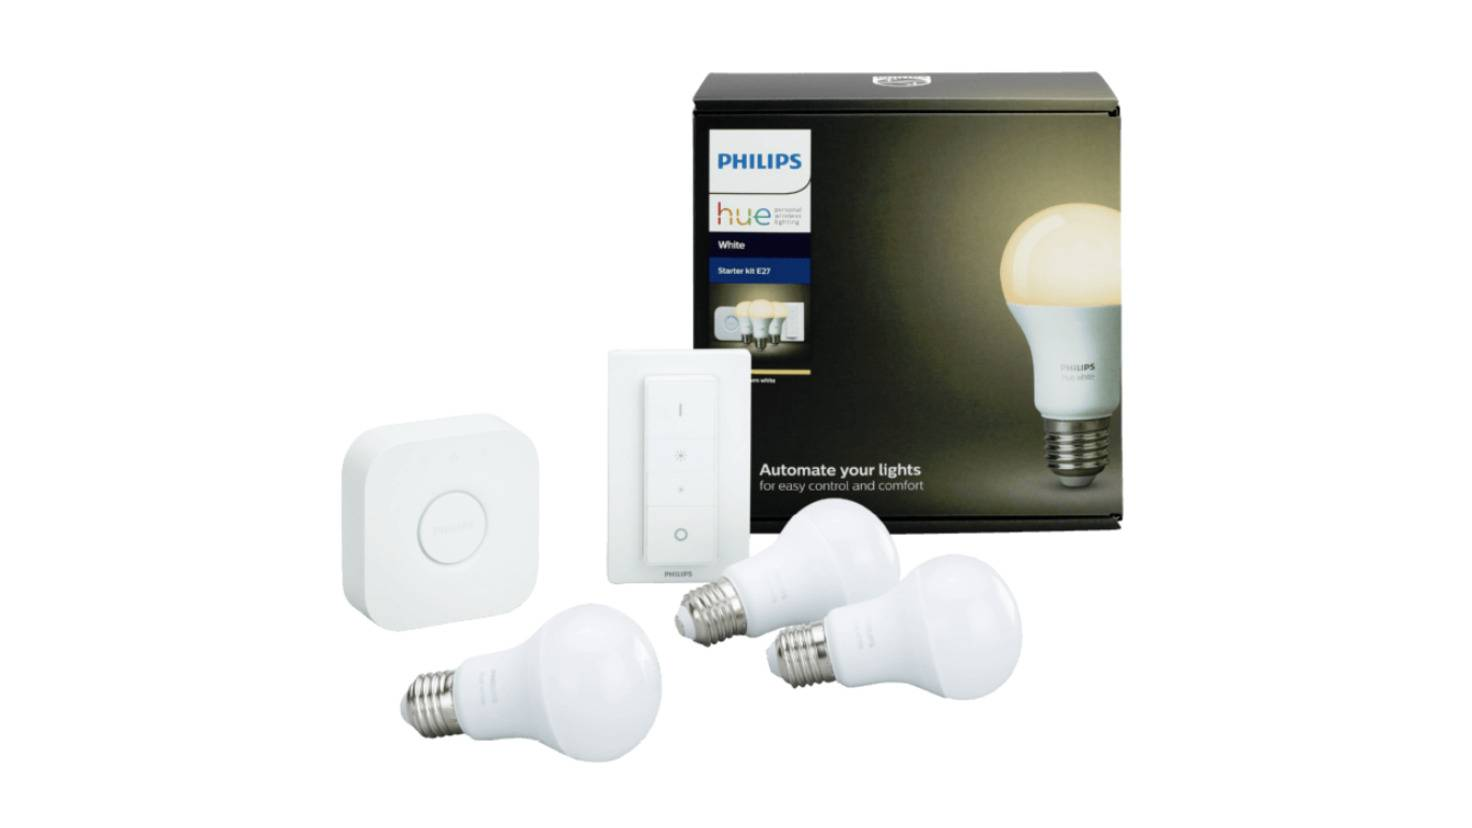 Philips-Hue-White-Starter-Kit